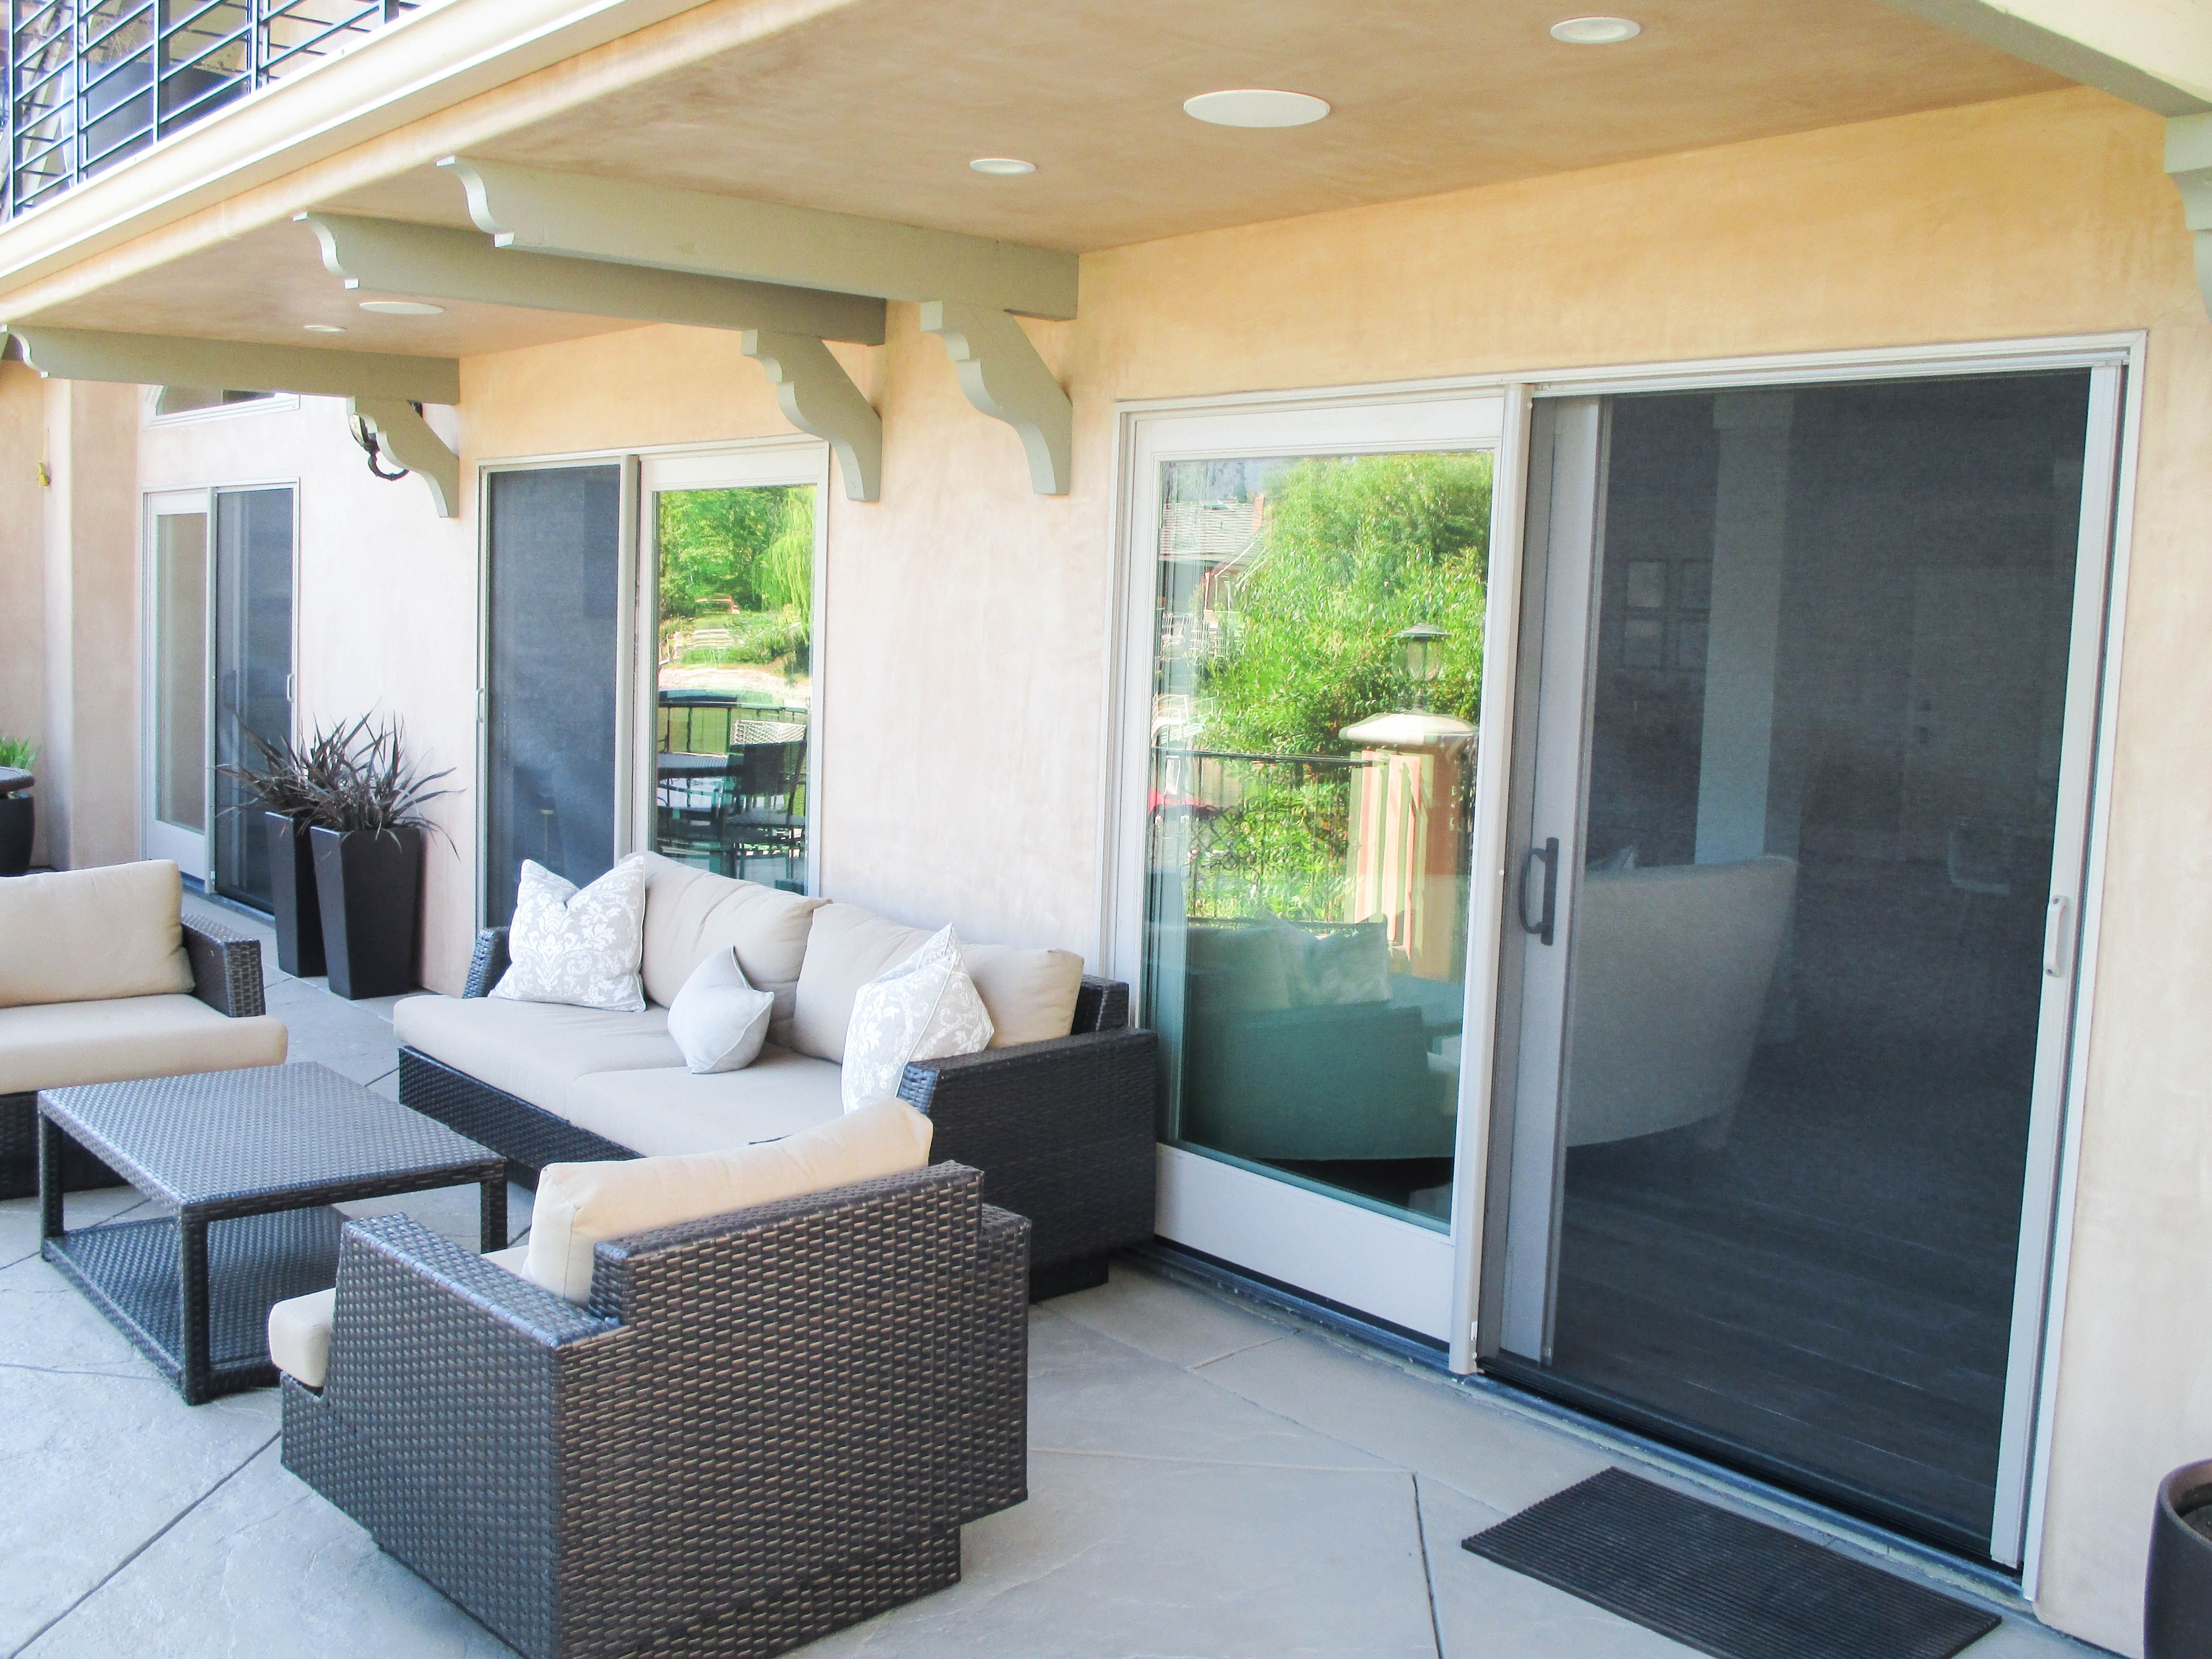 If you have a sliding door, a traditional screen door is